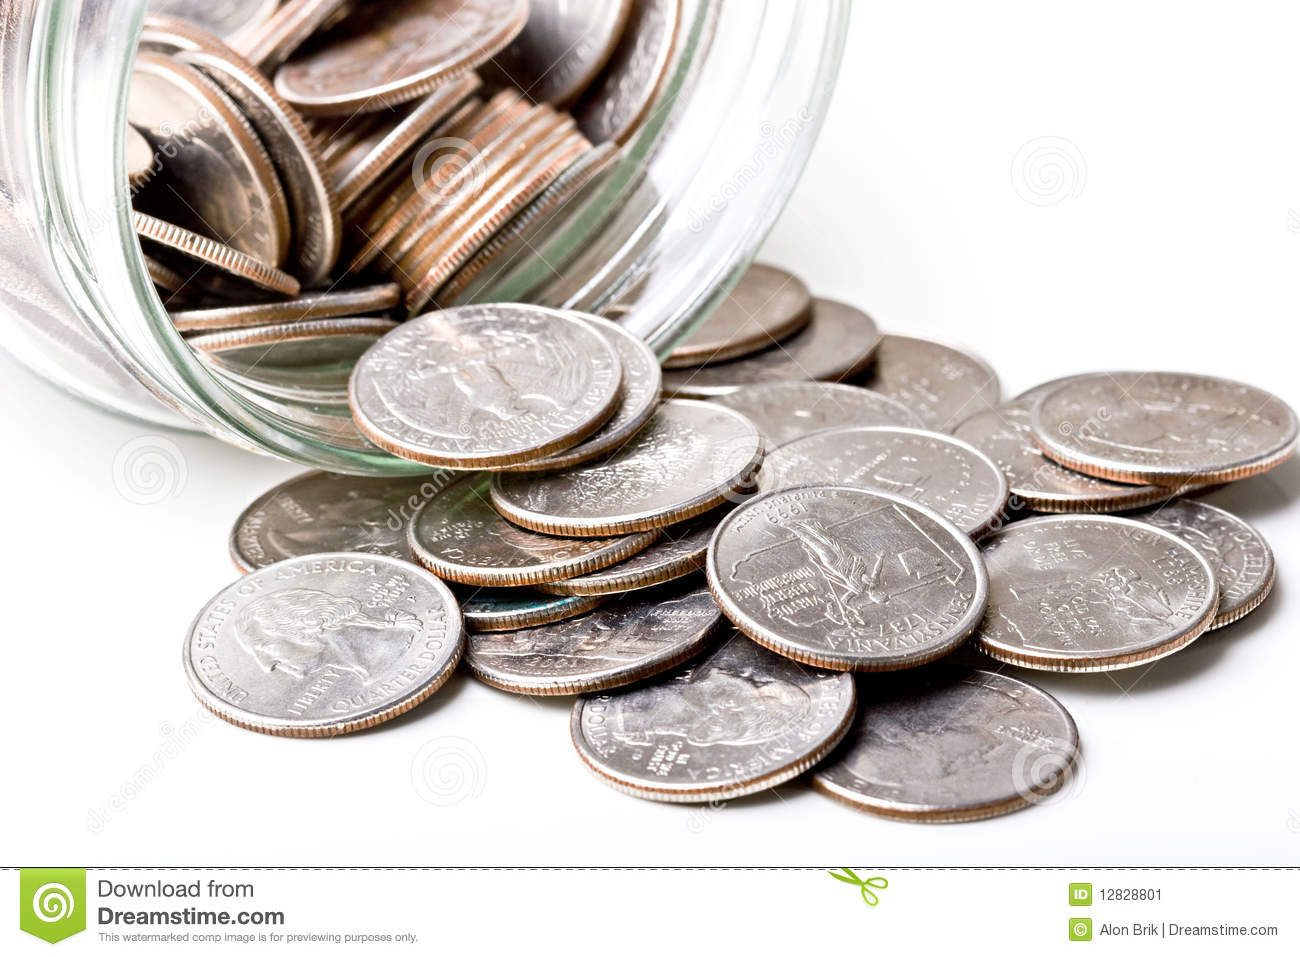 Quarters 25 Cents Change Coins In A Glass Jar Stock Images - Image ...